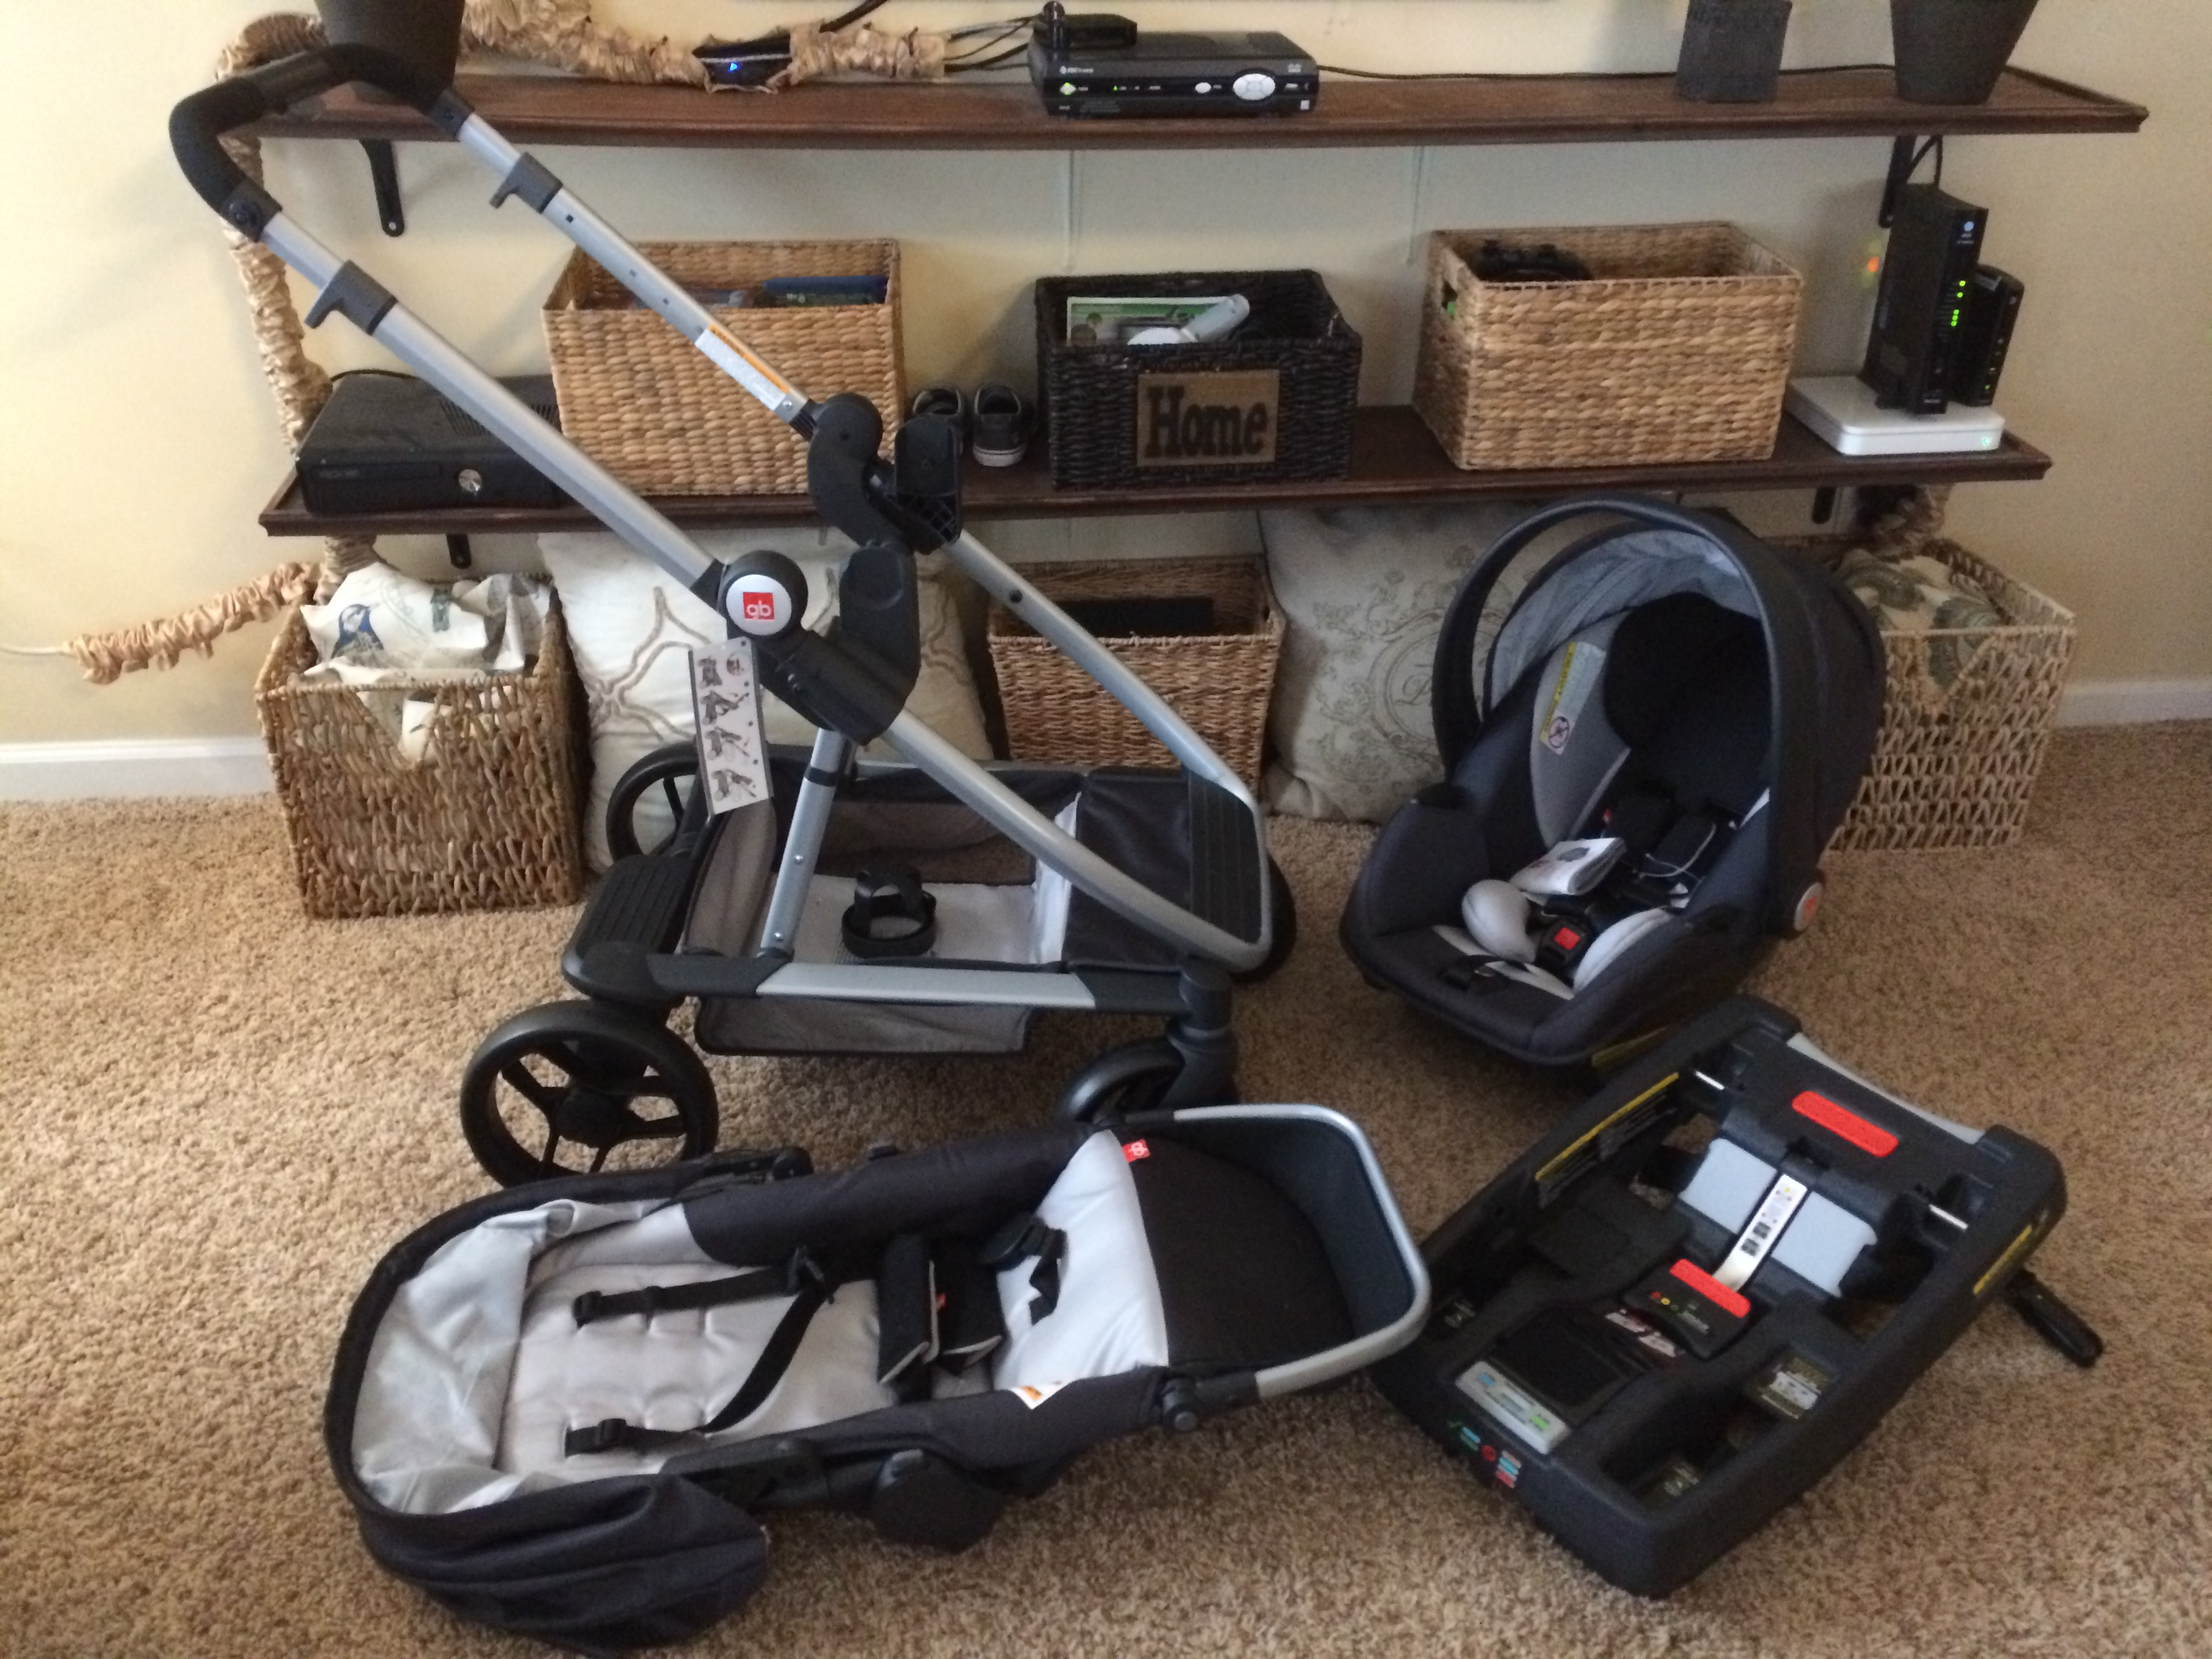 Car Seat Stroller Travel System Reviews Evoq Travel System And Stroller Review Redhead Baby Mama